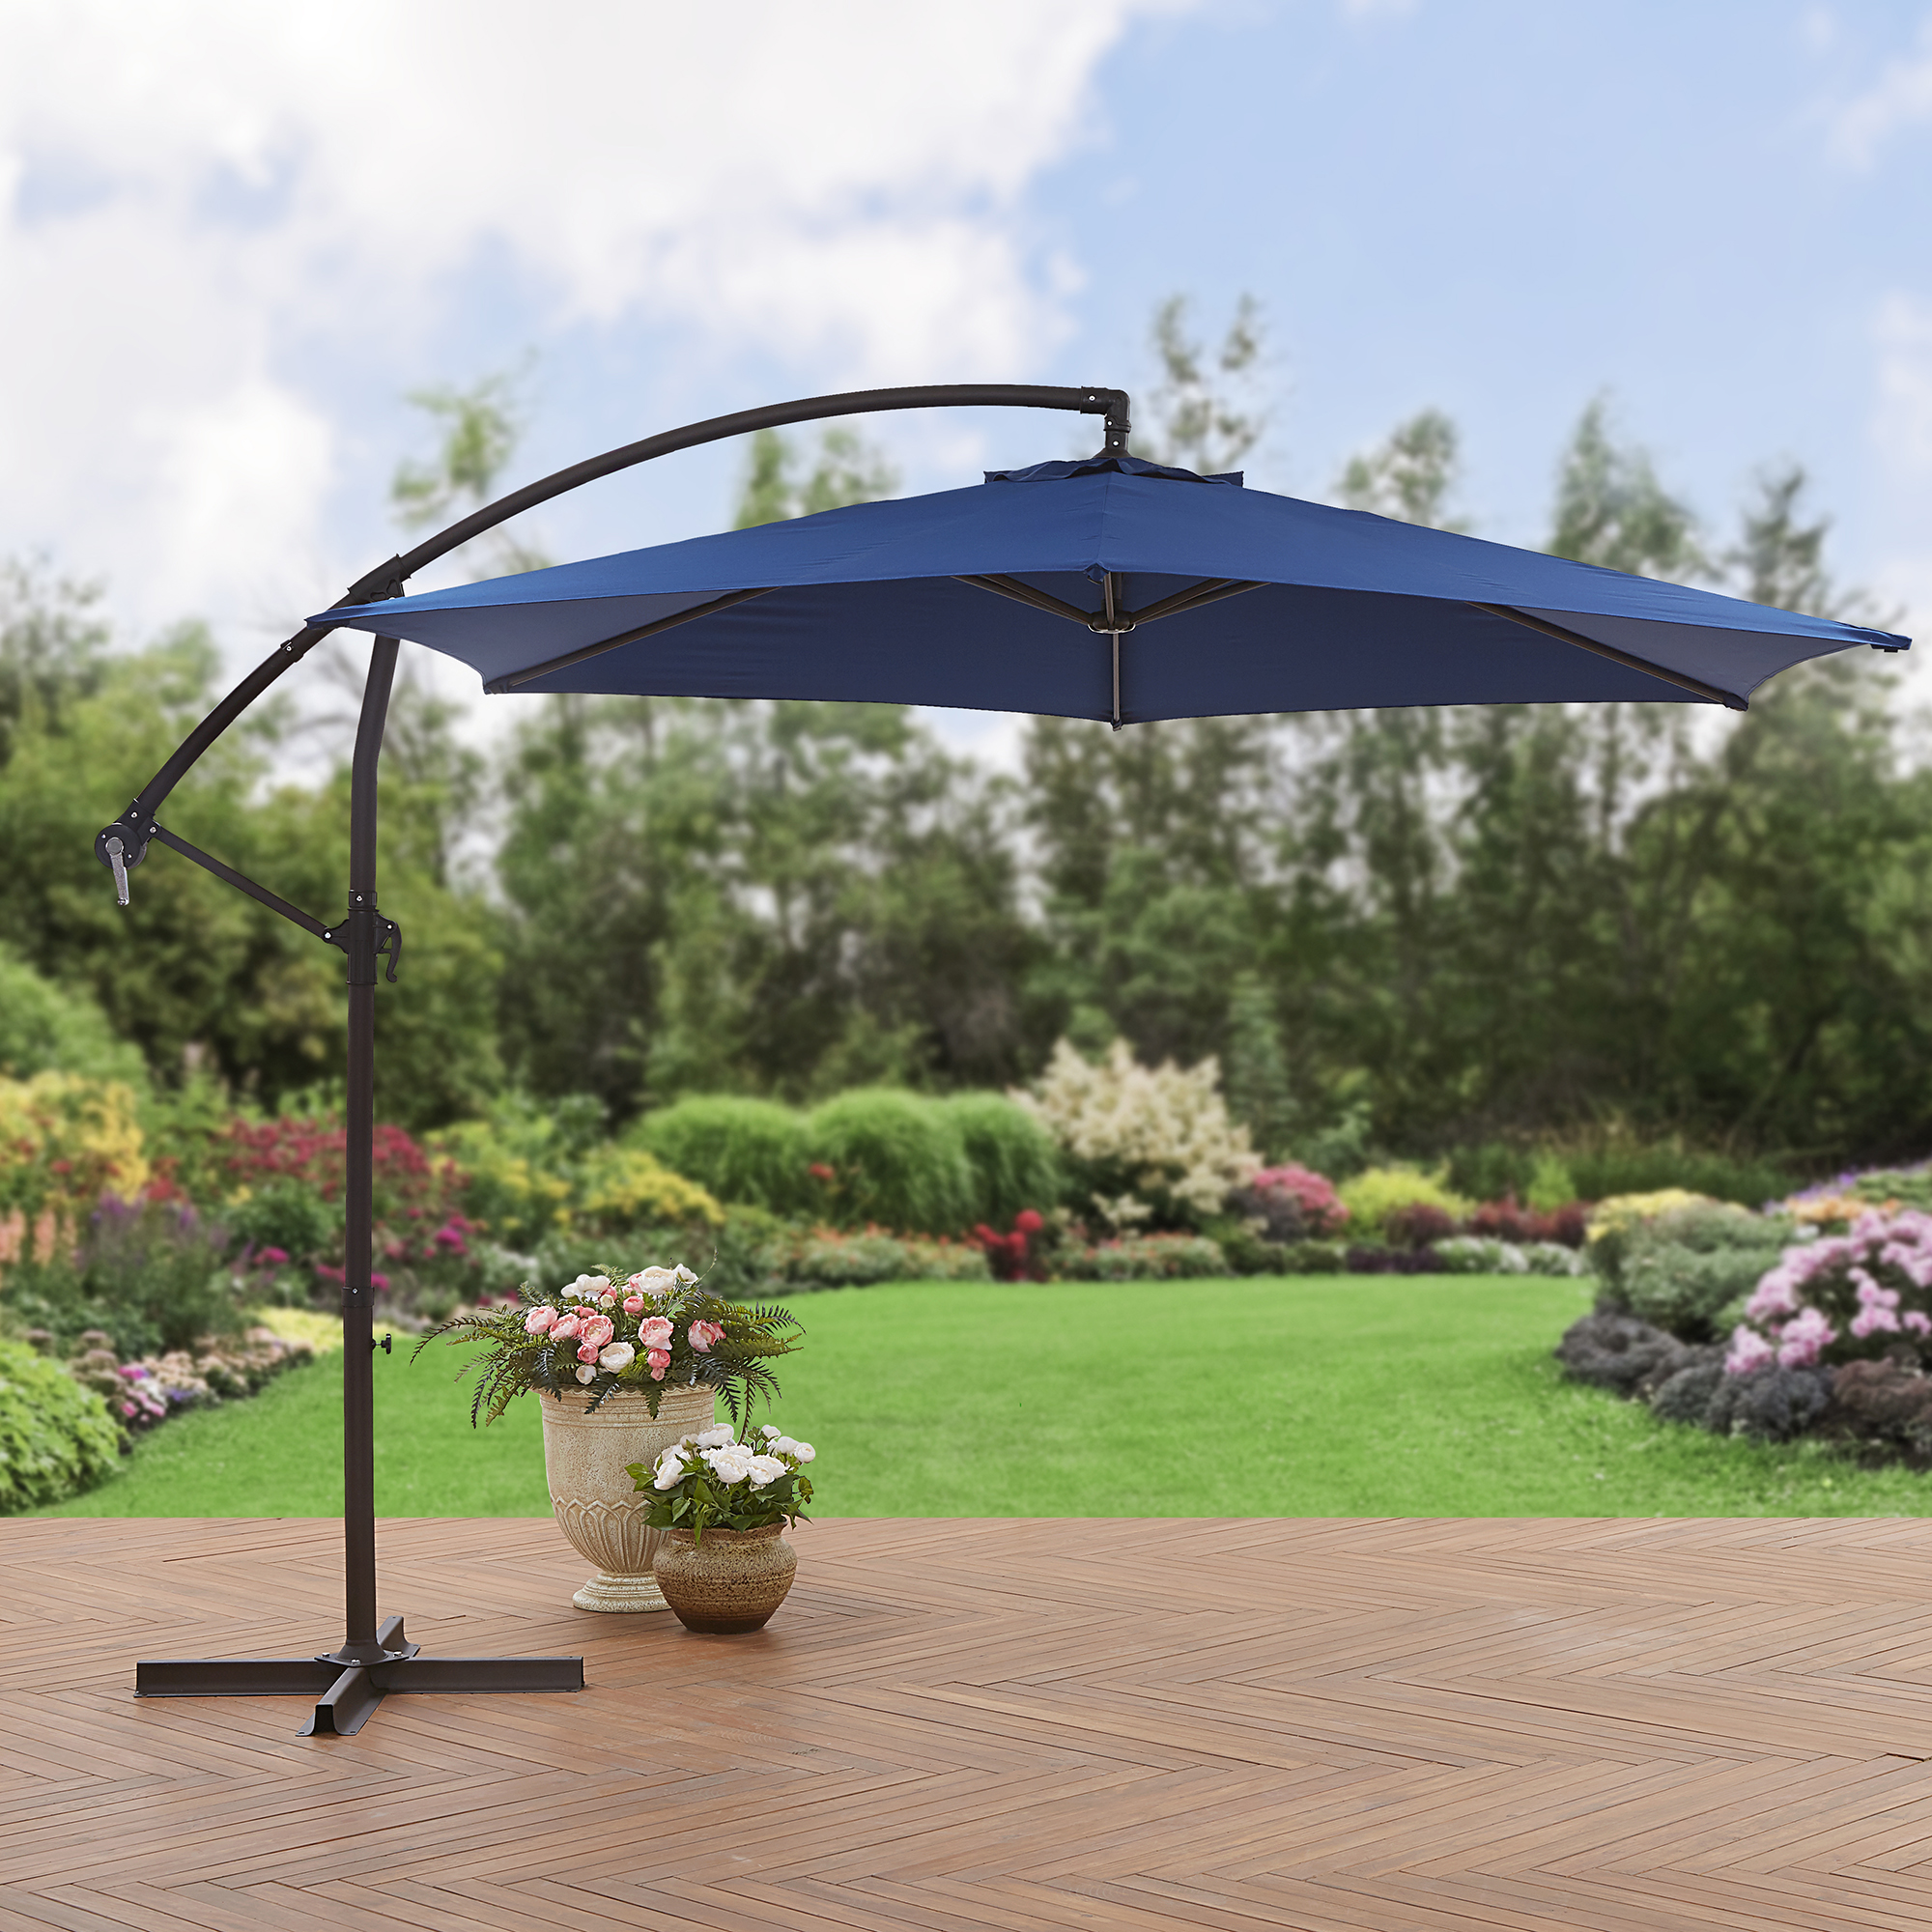 Mainstays 10' Steel Offset Patio Umbrella, Navy by NINGBO EVERLUCK OUTDOOR PRODUCTS MANUFACTING CO LTD